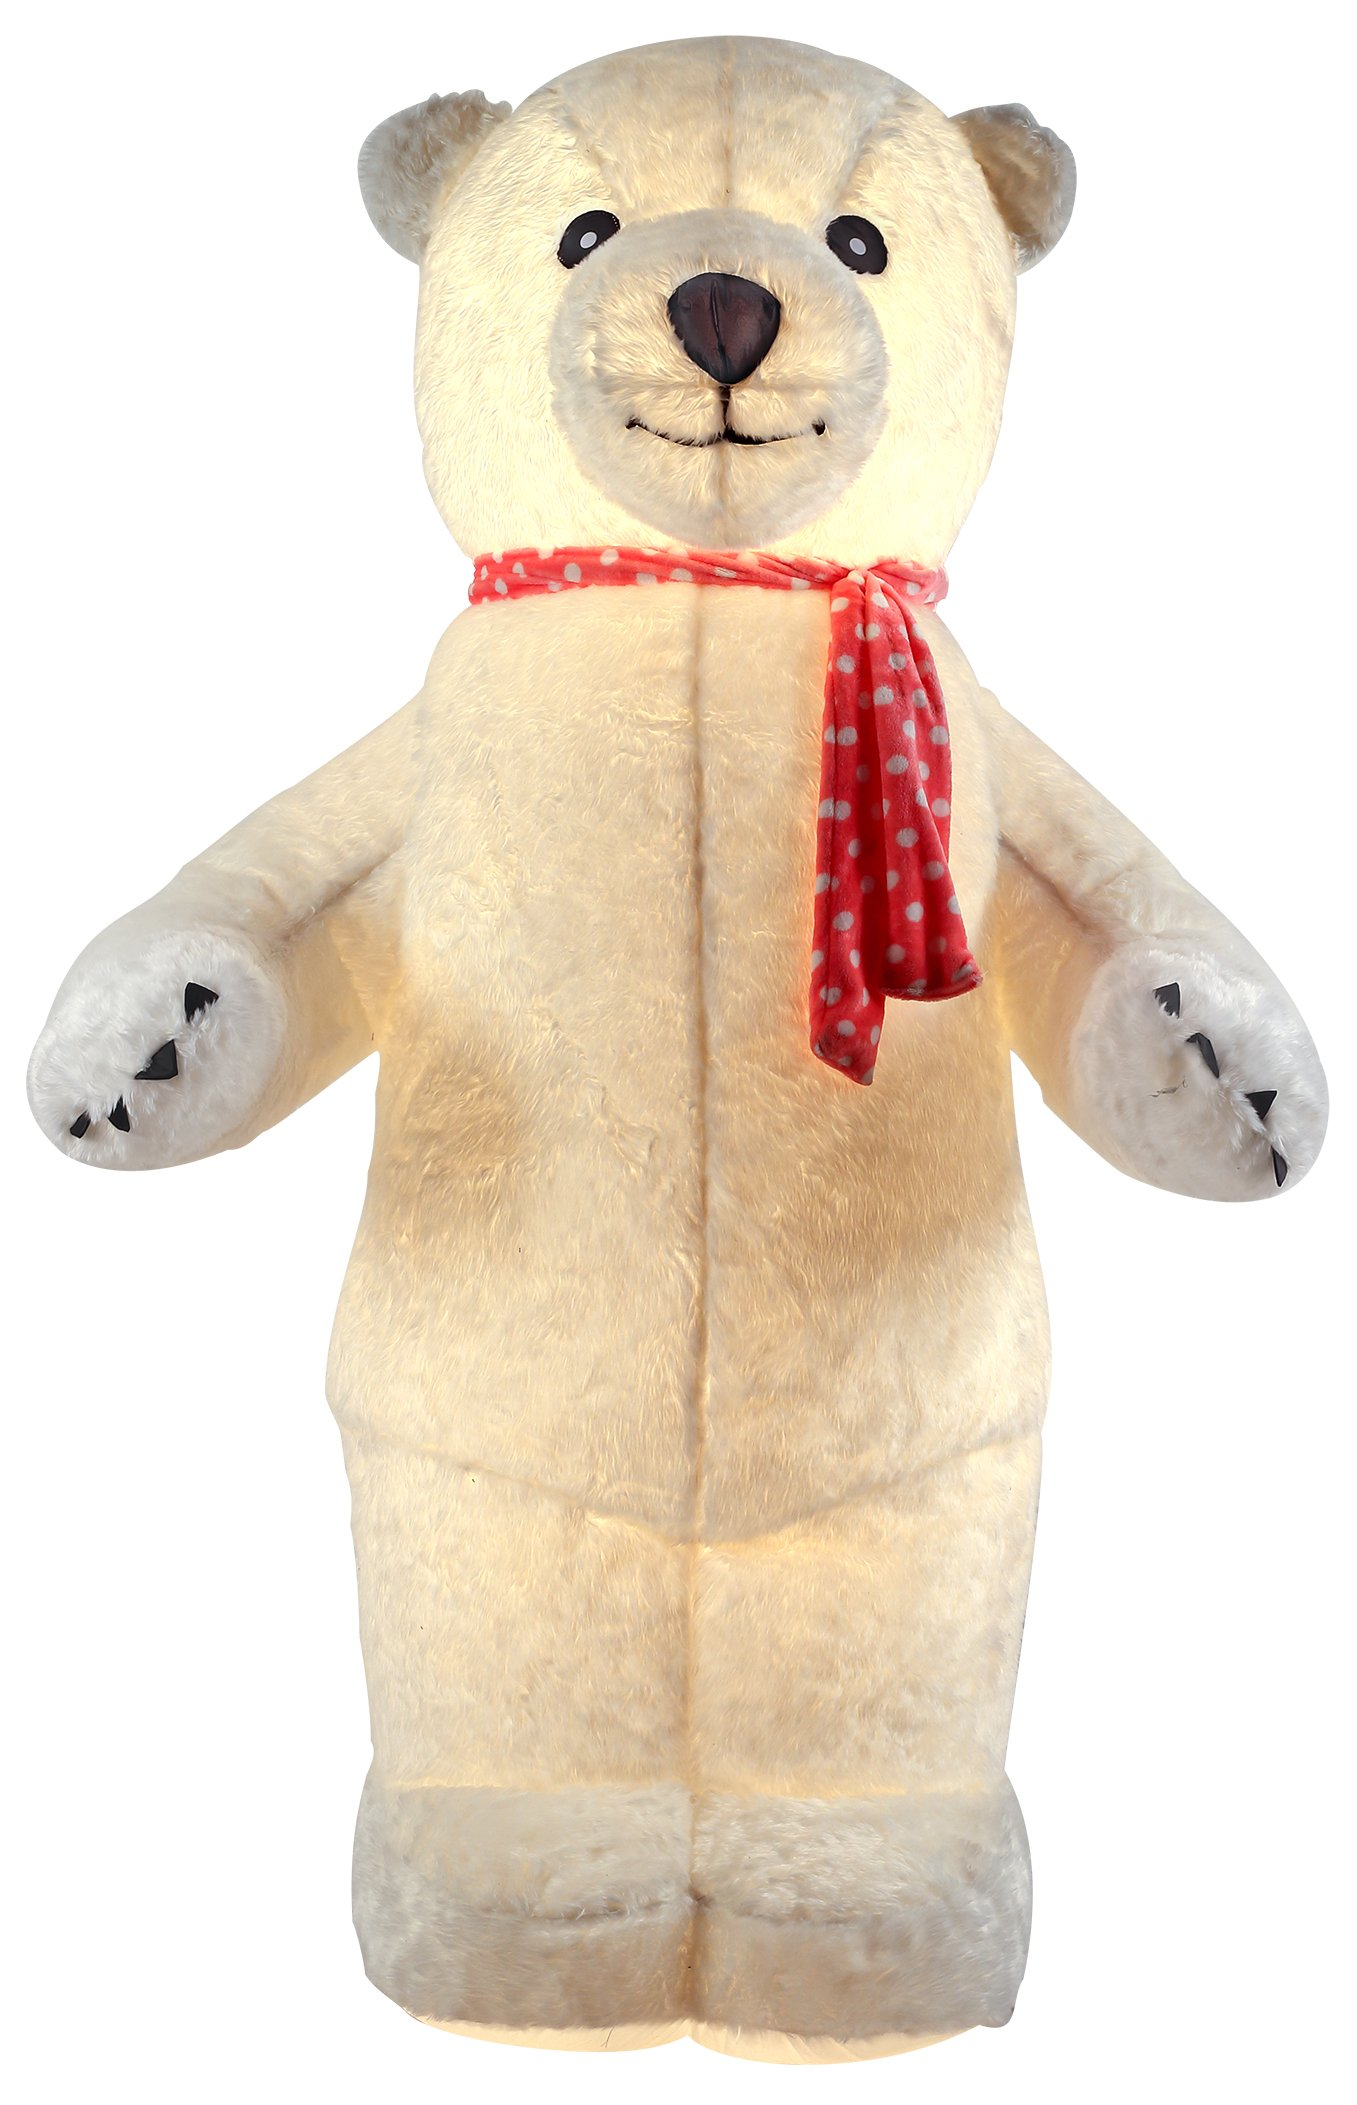 VIDAMORE 6.5FT Inflatable Standing Polar Bear with Plush Fabric Cover Indoor Outdoor Christmas Decorations by VIDAMORE